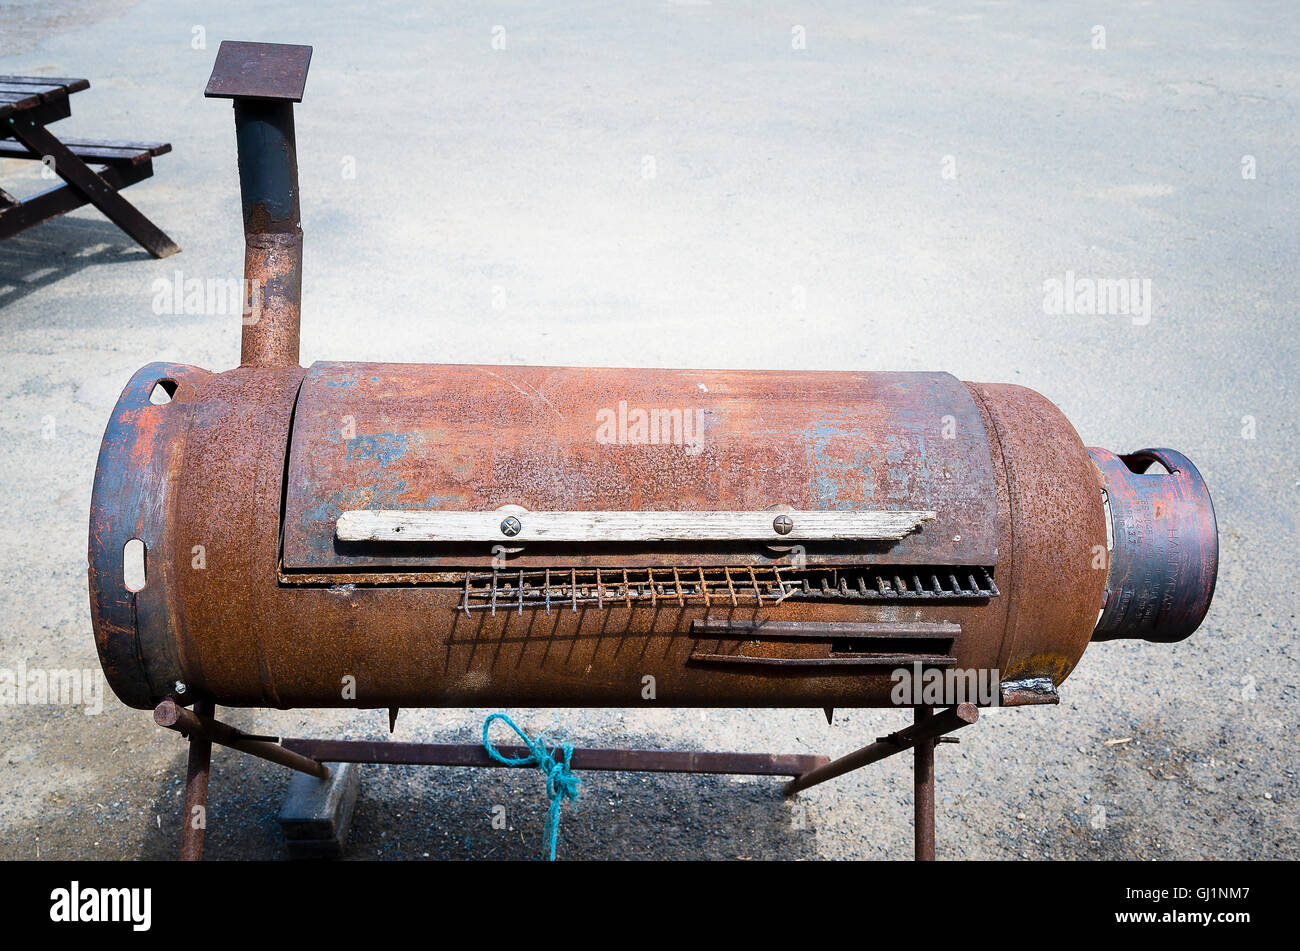 A DIY Barbecue oven made from a recycled cylinder - Stock Image